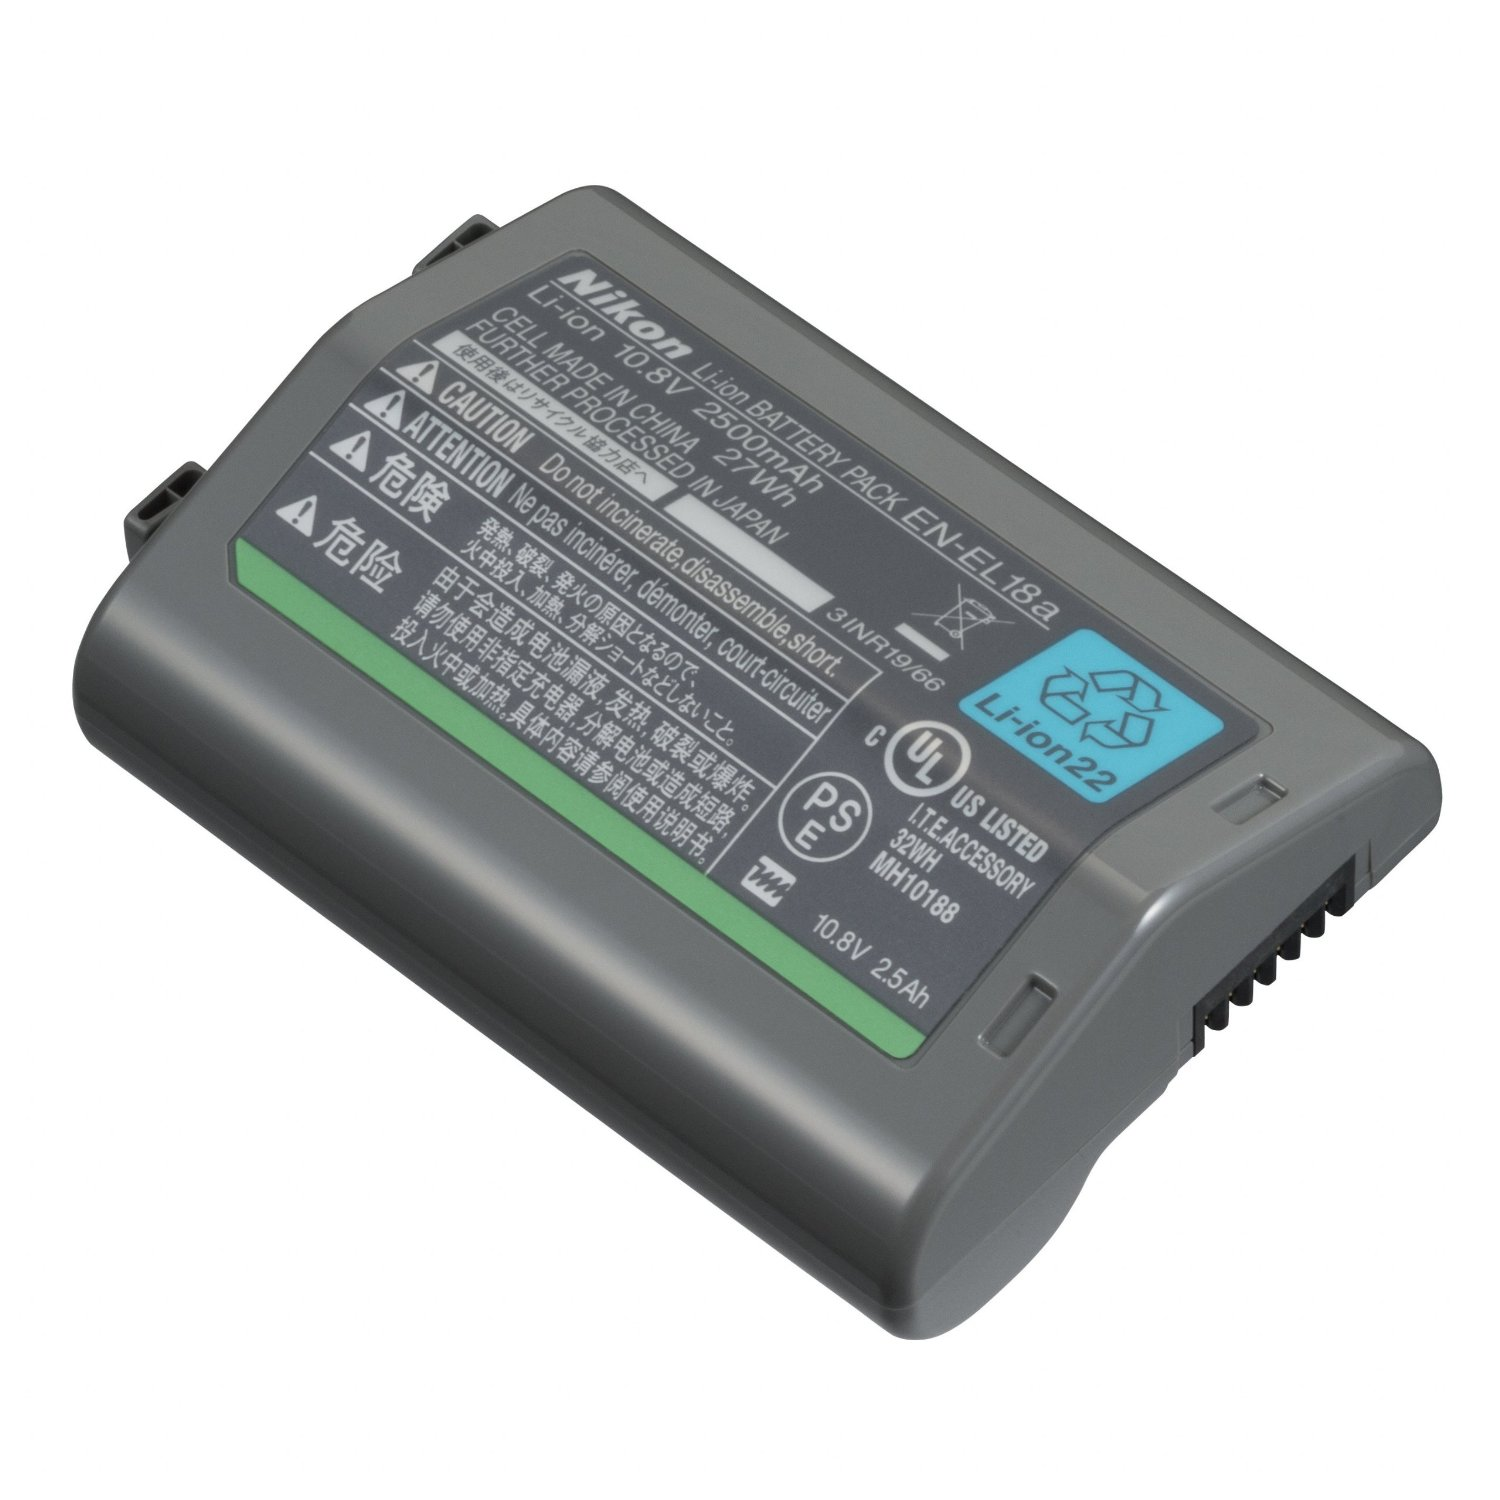 Nikon EN-EL18a Rechargeable Lithium-ion Battery Pack for D4S